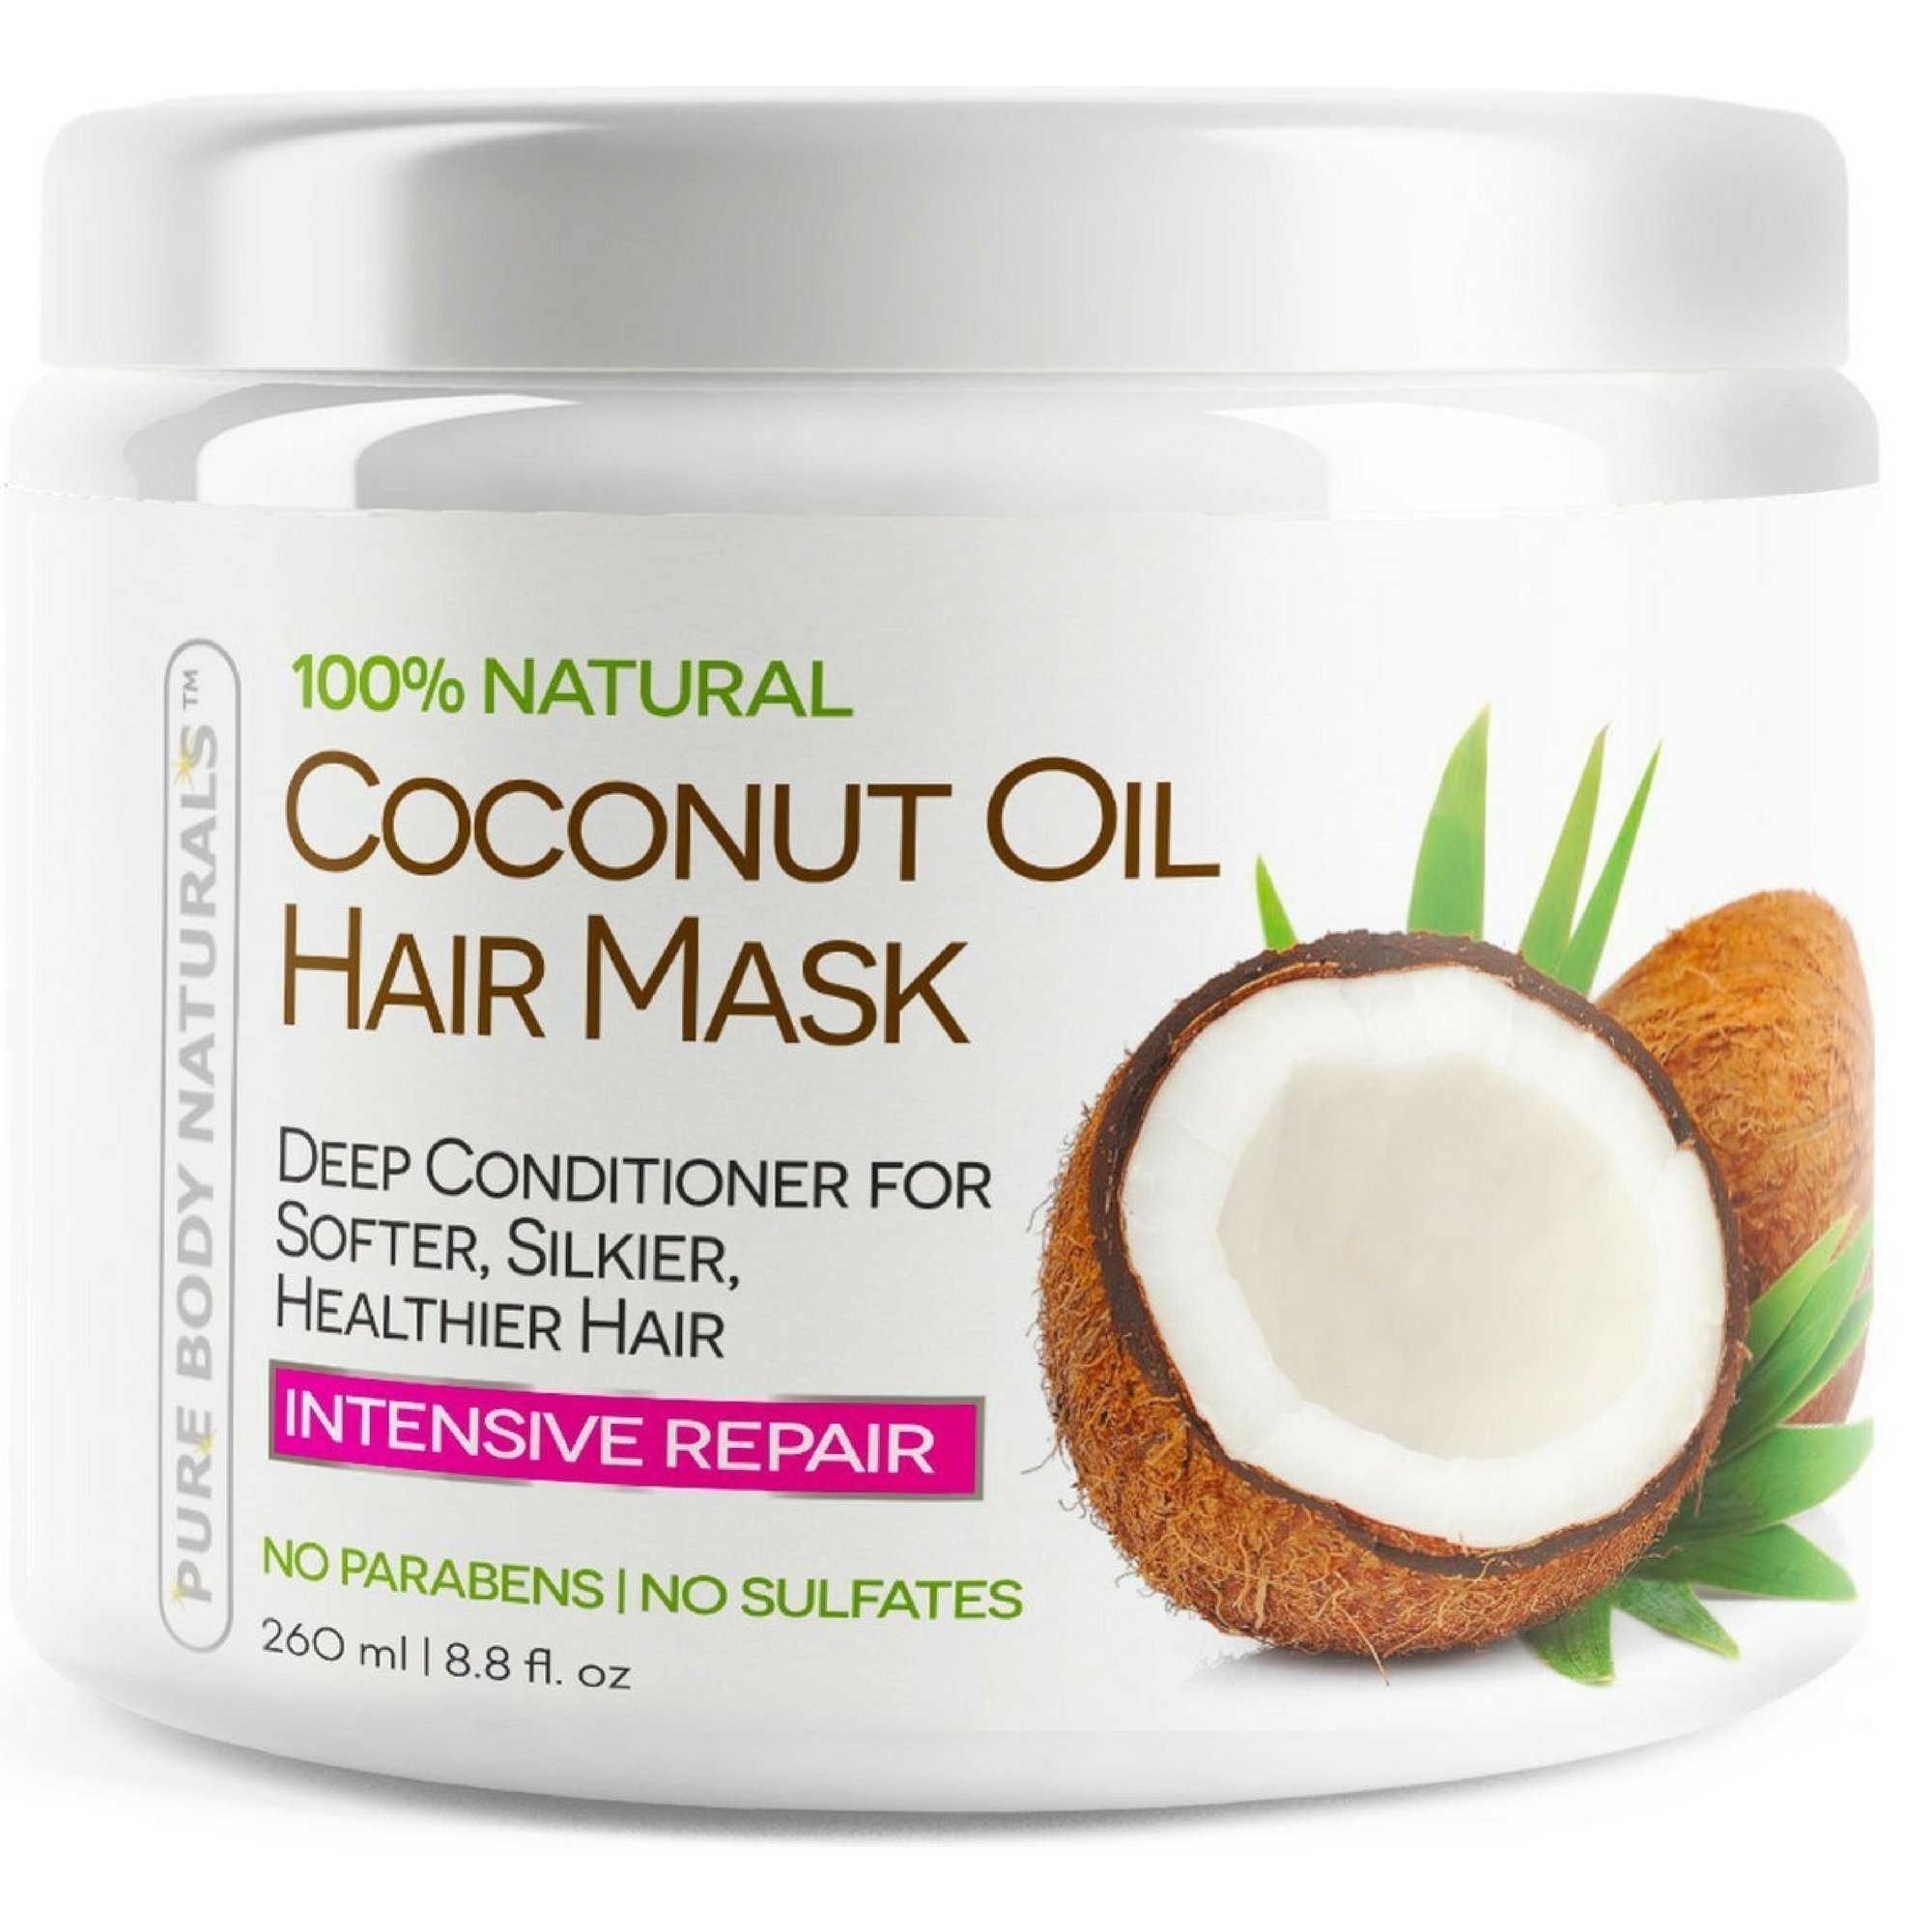 Coconut Oil Hair Mask, Deep Conditioning Hair Treatment for Dry Damaged and Color Treated Hair, Sulfate Free Conditioner, Moisturizes, Repairs, Restores by Pure Body Naturals, 8.8 Fl. Ounce